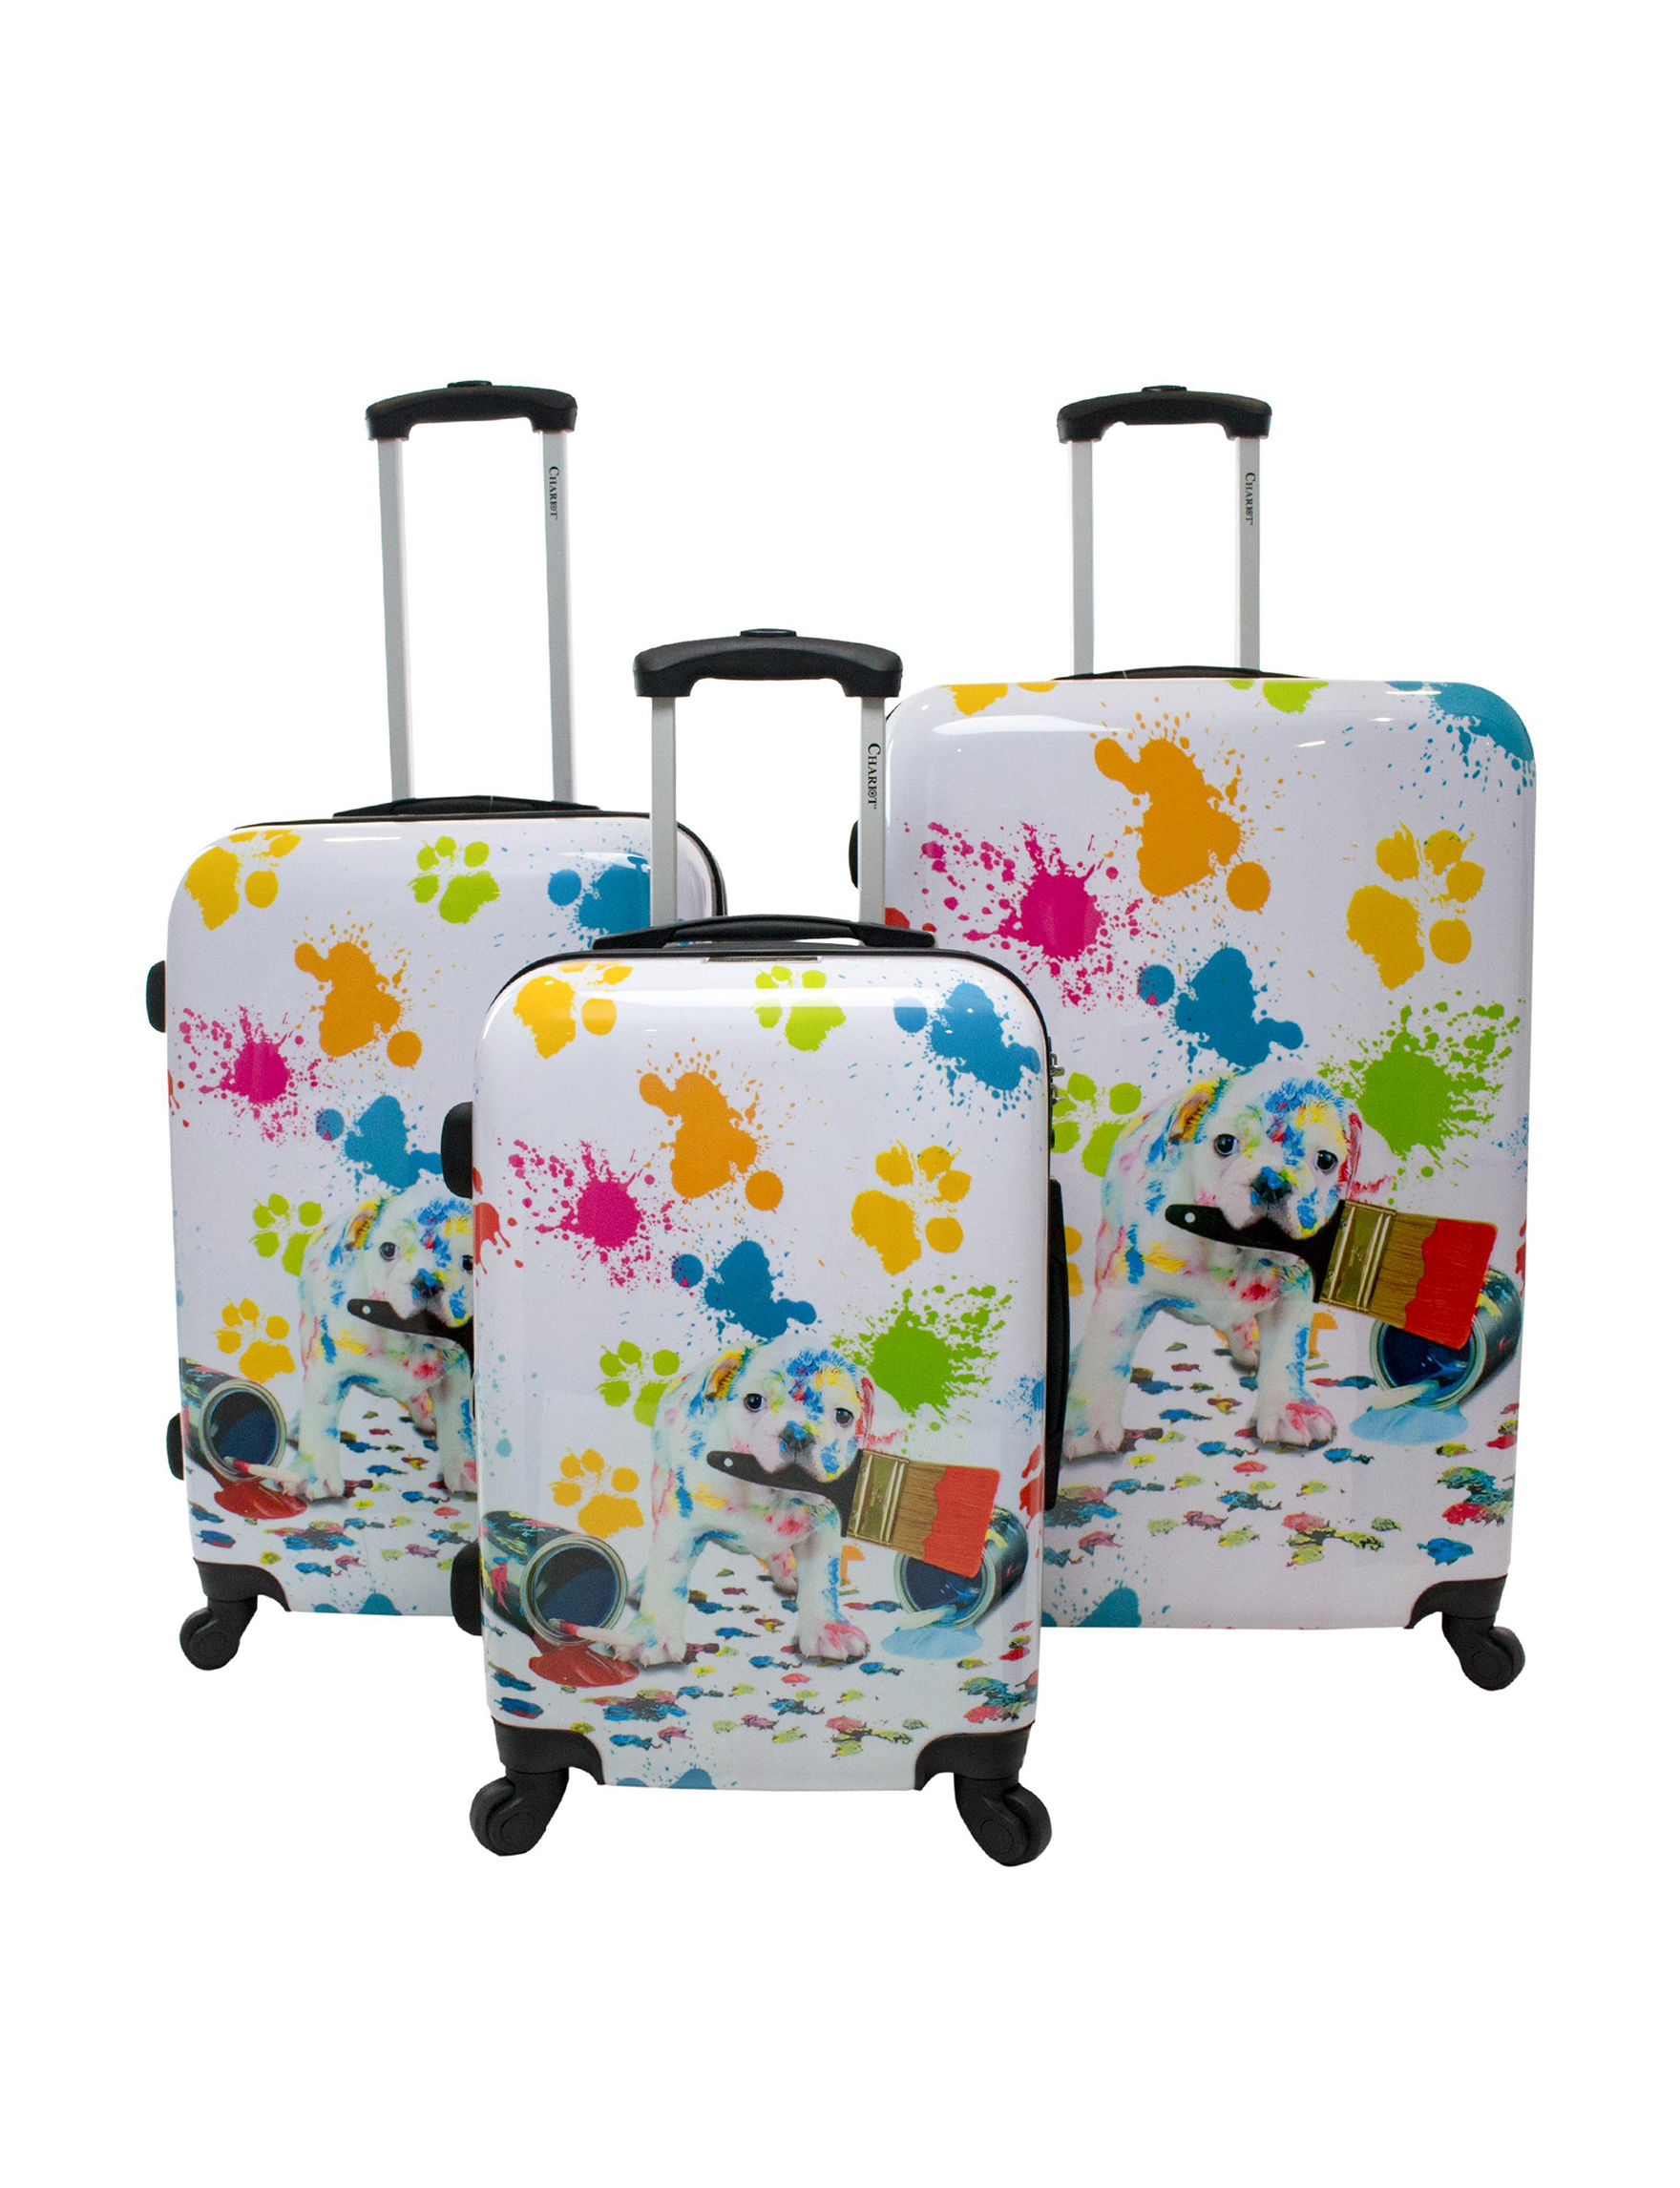 Chariot Travelware White / Multi Upright Spinners